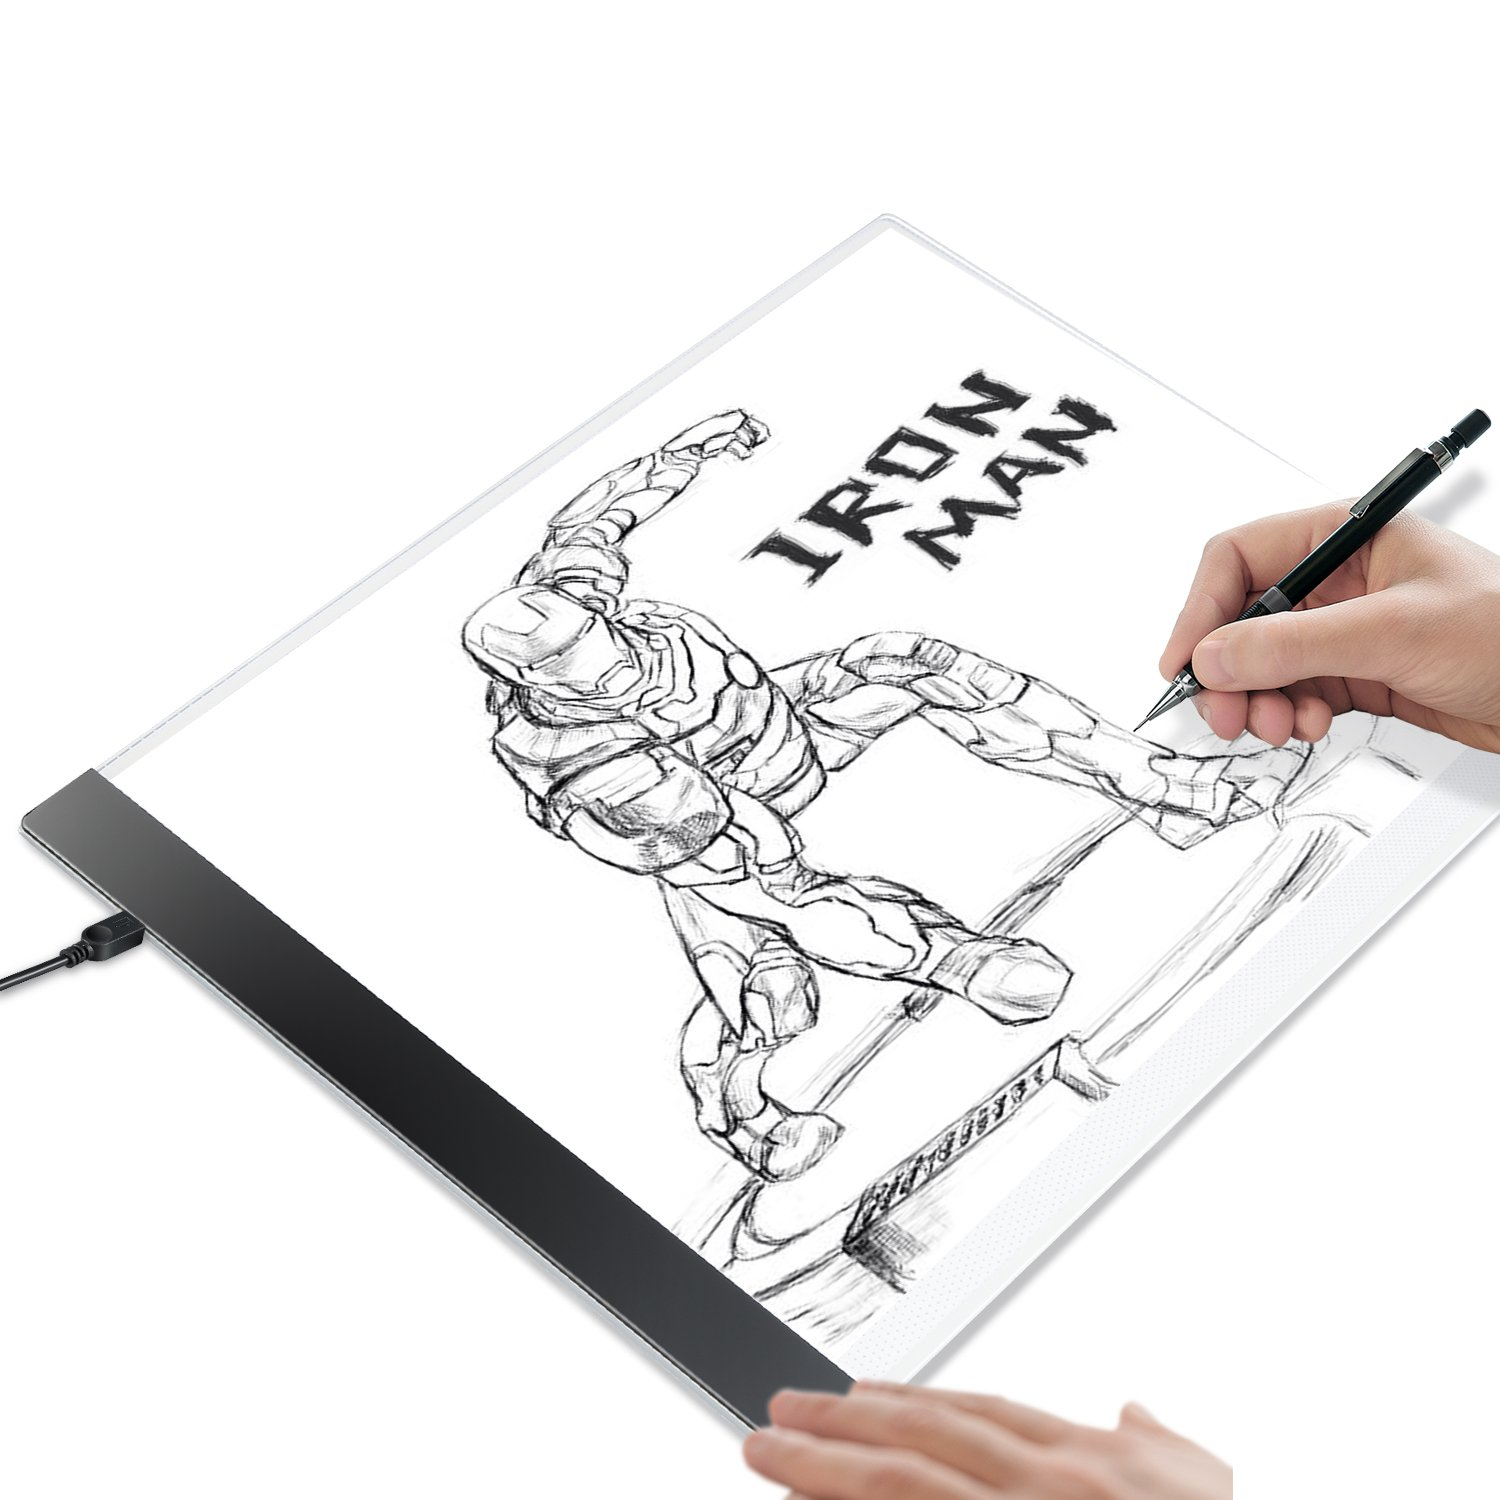 Kohree A4 LED Tracing Light Box Tracer Portable Artists Drawing Board Copyboard USB Power Cable Artcraft Tracing Light Pad for Sketching Animation Designing Stenciling X-Ray Viewing by Kohree